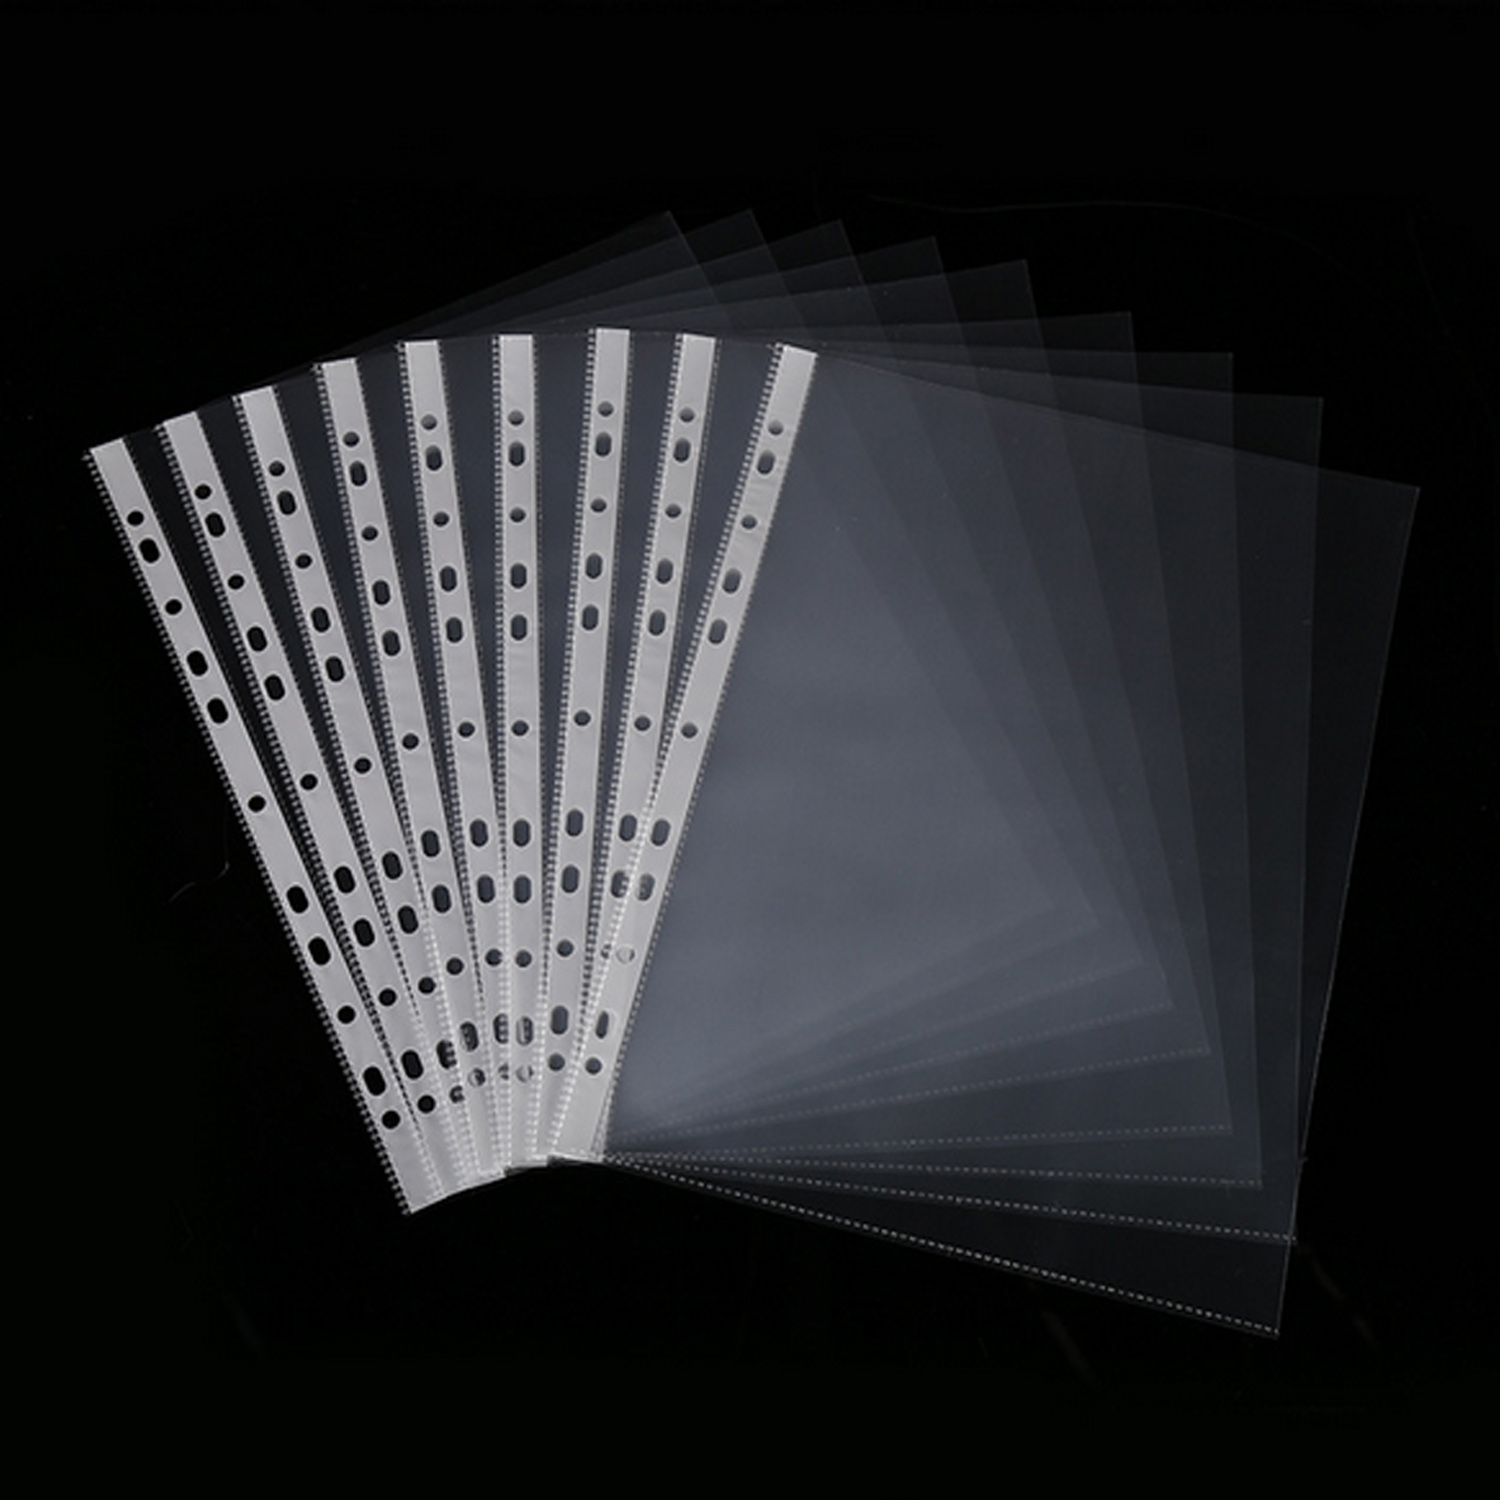 20PCS A4 Size Multipurpose File 11-Hole Loose Leaf Clear PVC Sheet Page Document Punched Pocket Folder Protector For Files Paper